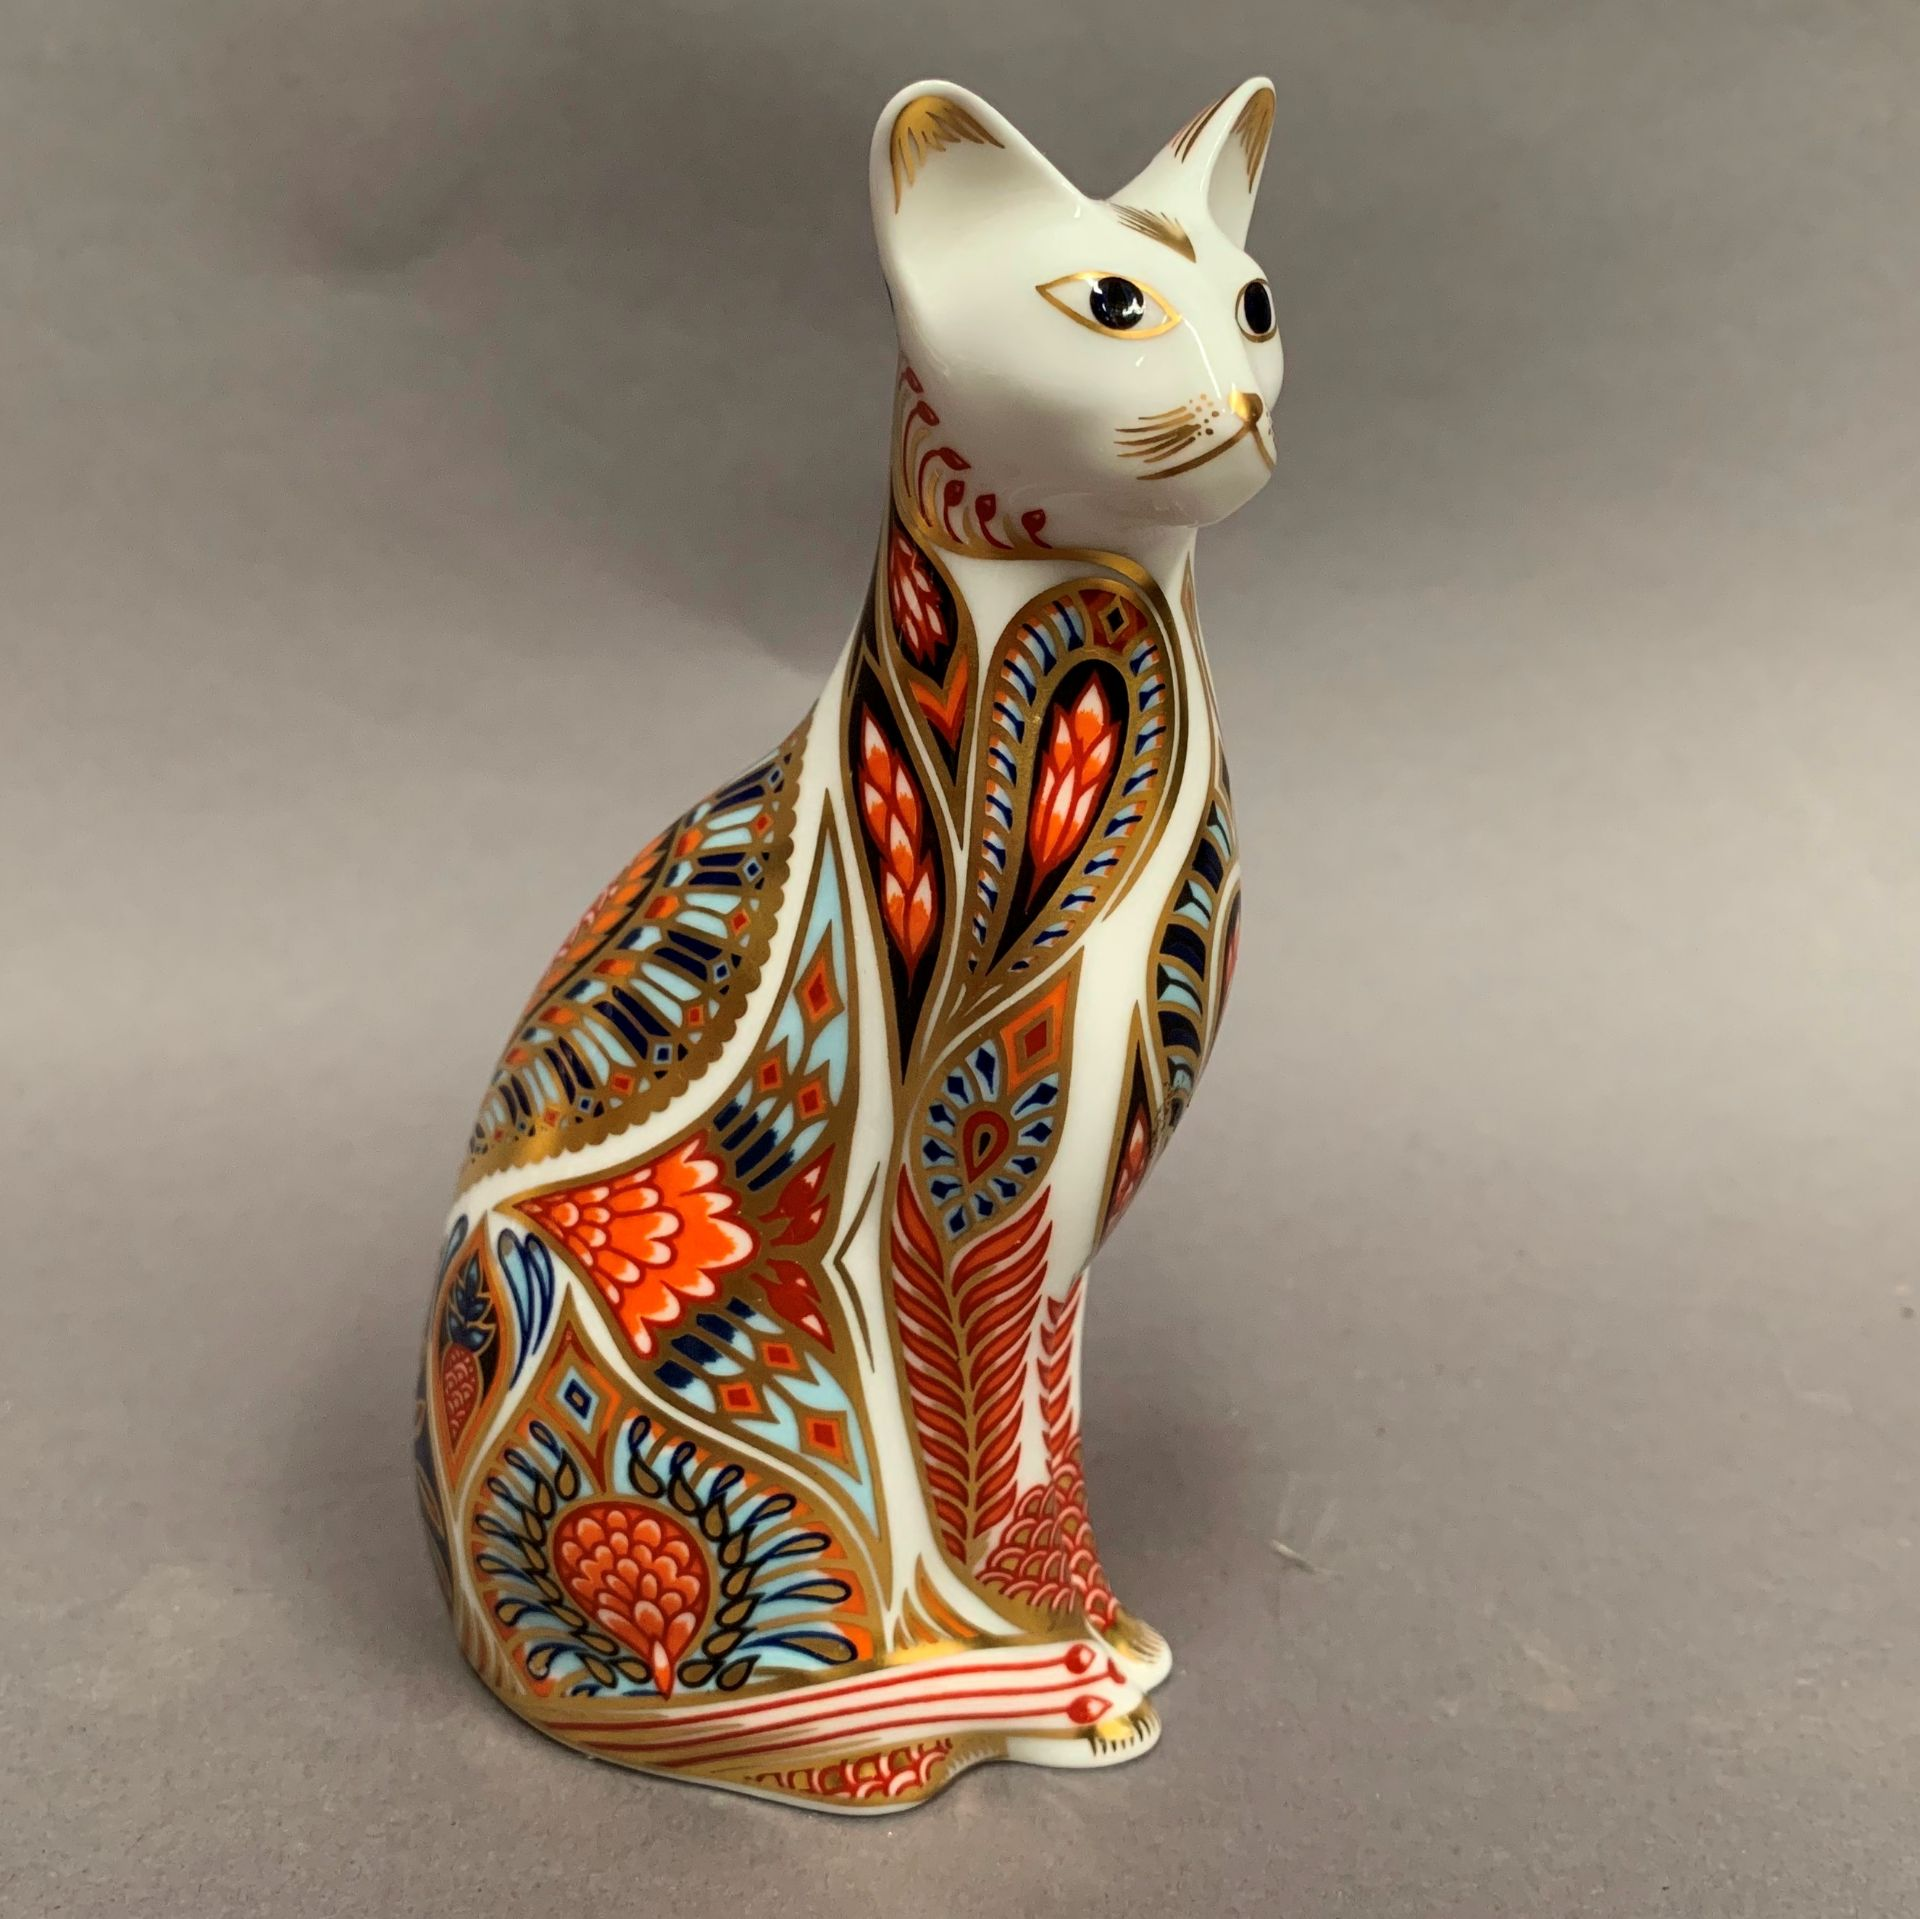 Lot 10 - Royal Crown Derby paperweight modelled as a cat, LX,